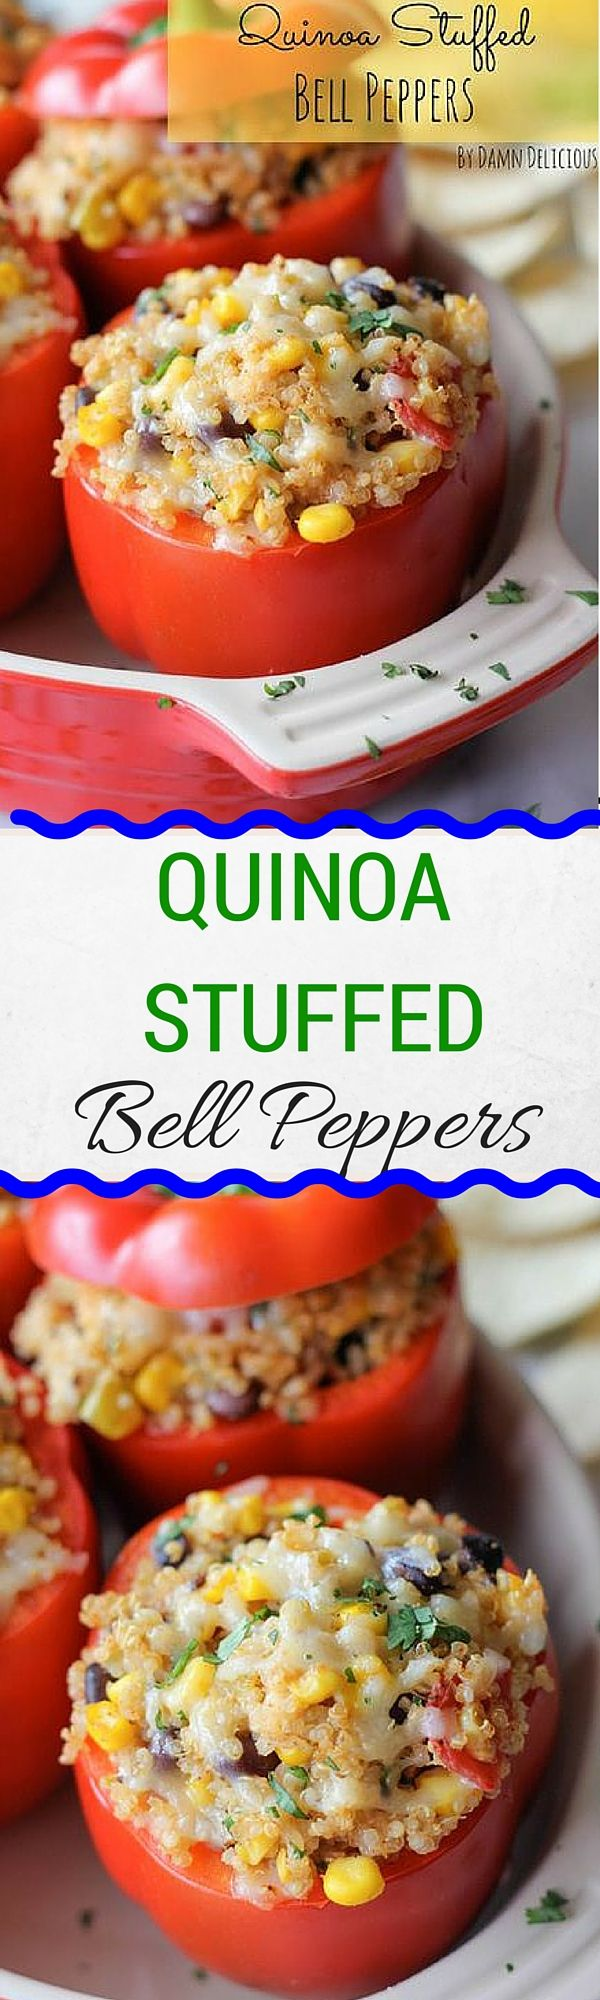 Quinoa Stuffed Bell Peppers by Damn Delicious